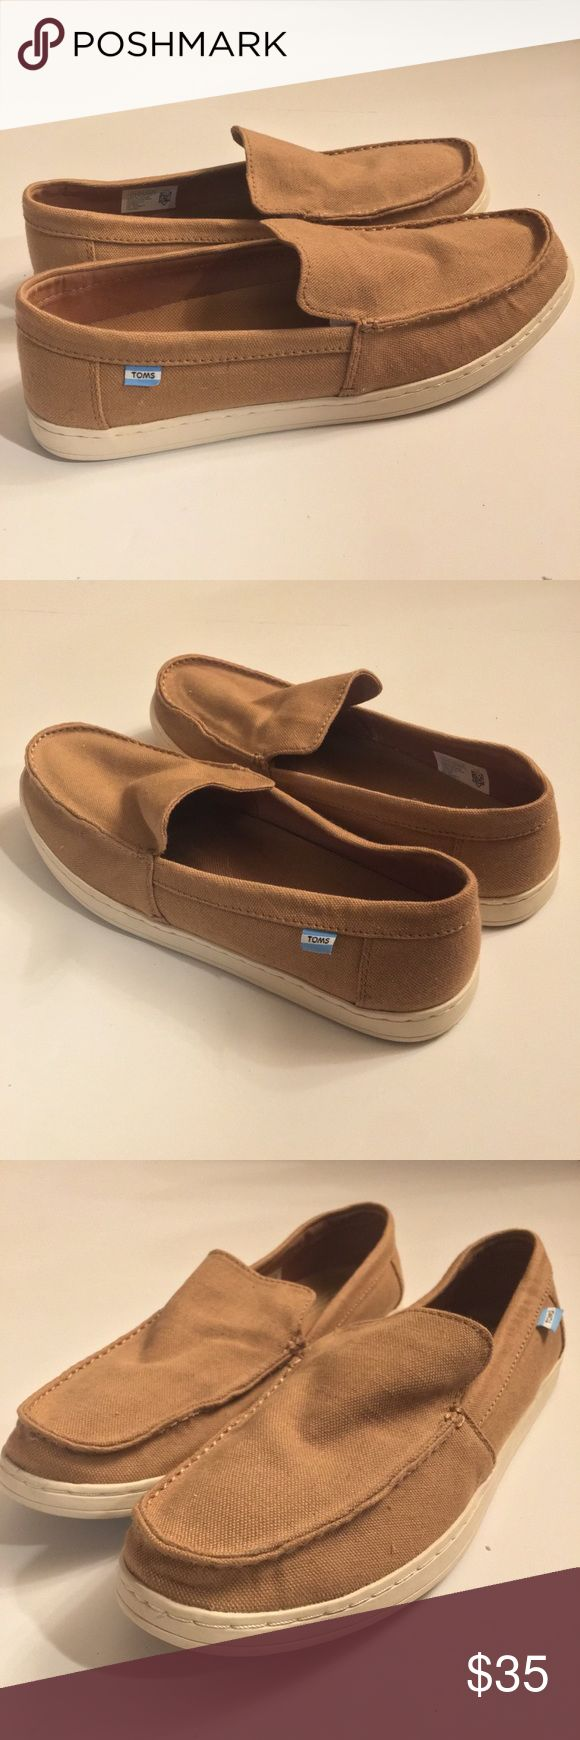 TOMs Aiden toffee hemp slip on loafers Slip-on style with moccasin-inspired details Toffee hemp upper Folded collar and moc stitch detail Removable footbed for comfort fights bacteria Rubber outsole for traction  Excellent used condition Toms Shoes Loafers & Slip-Ons